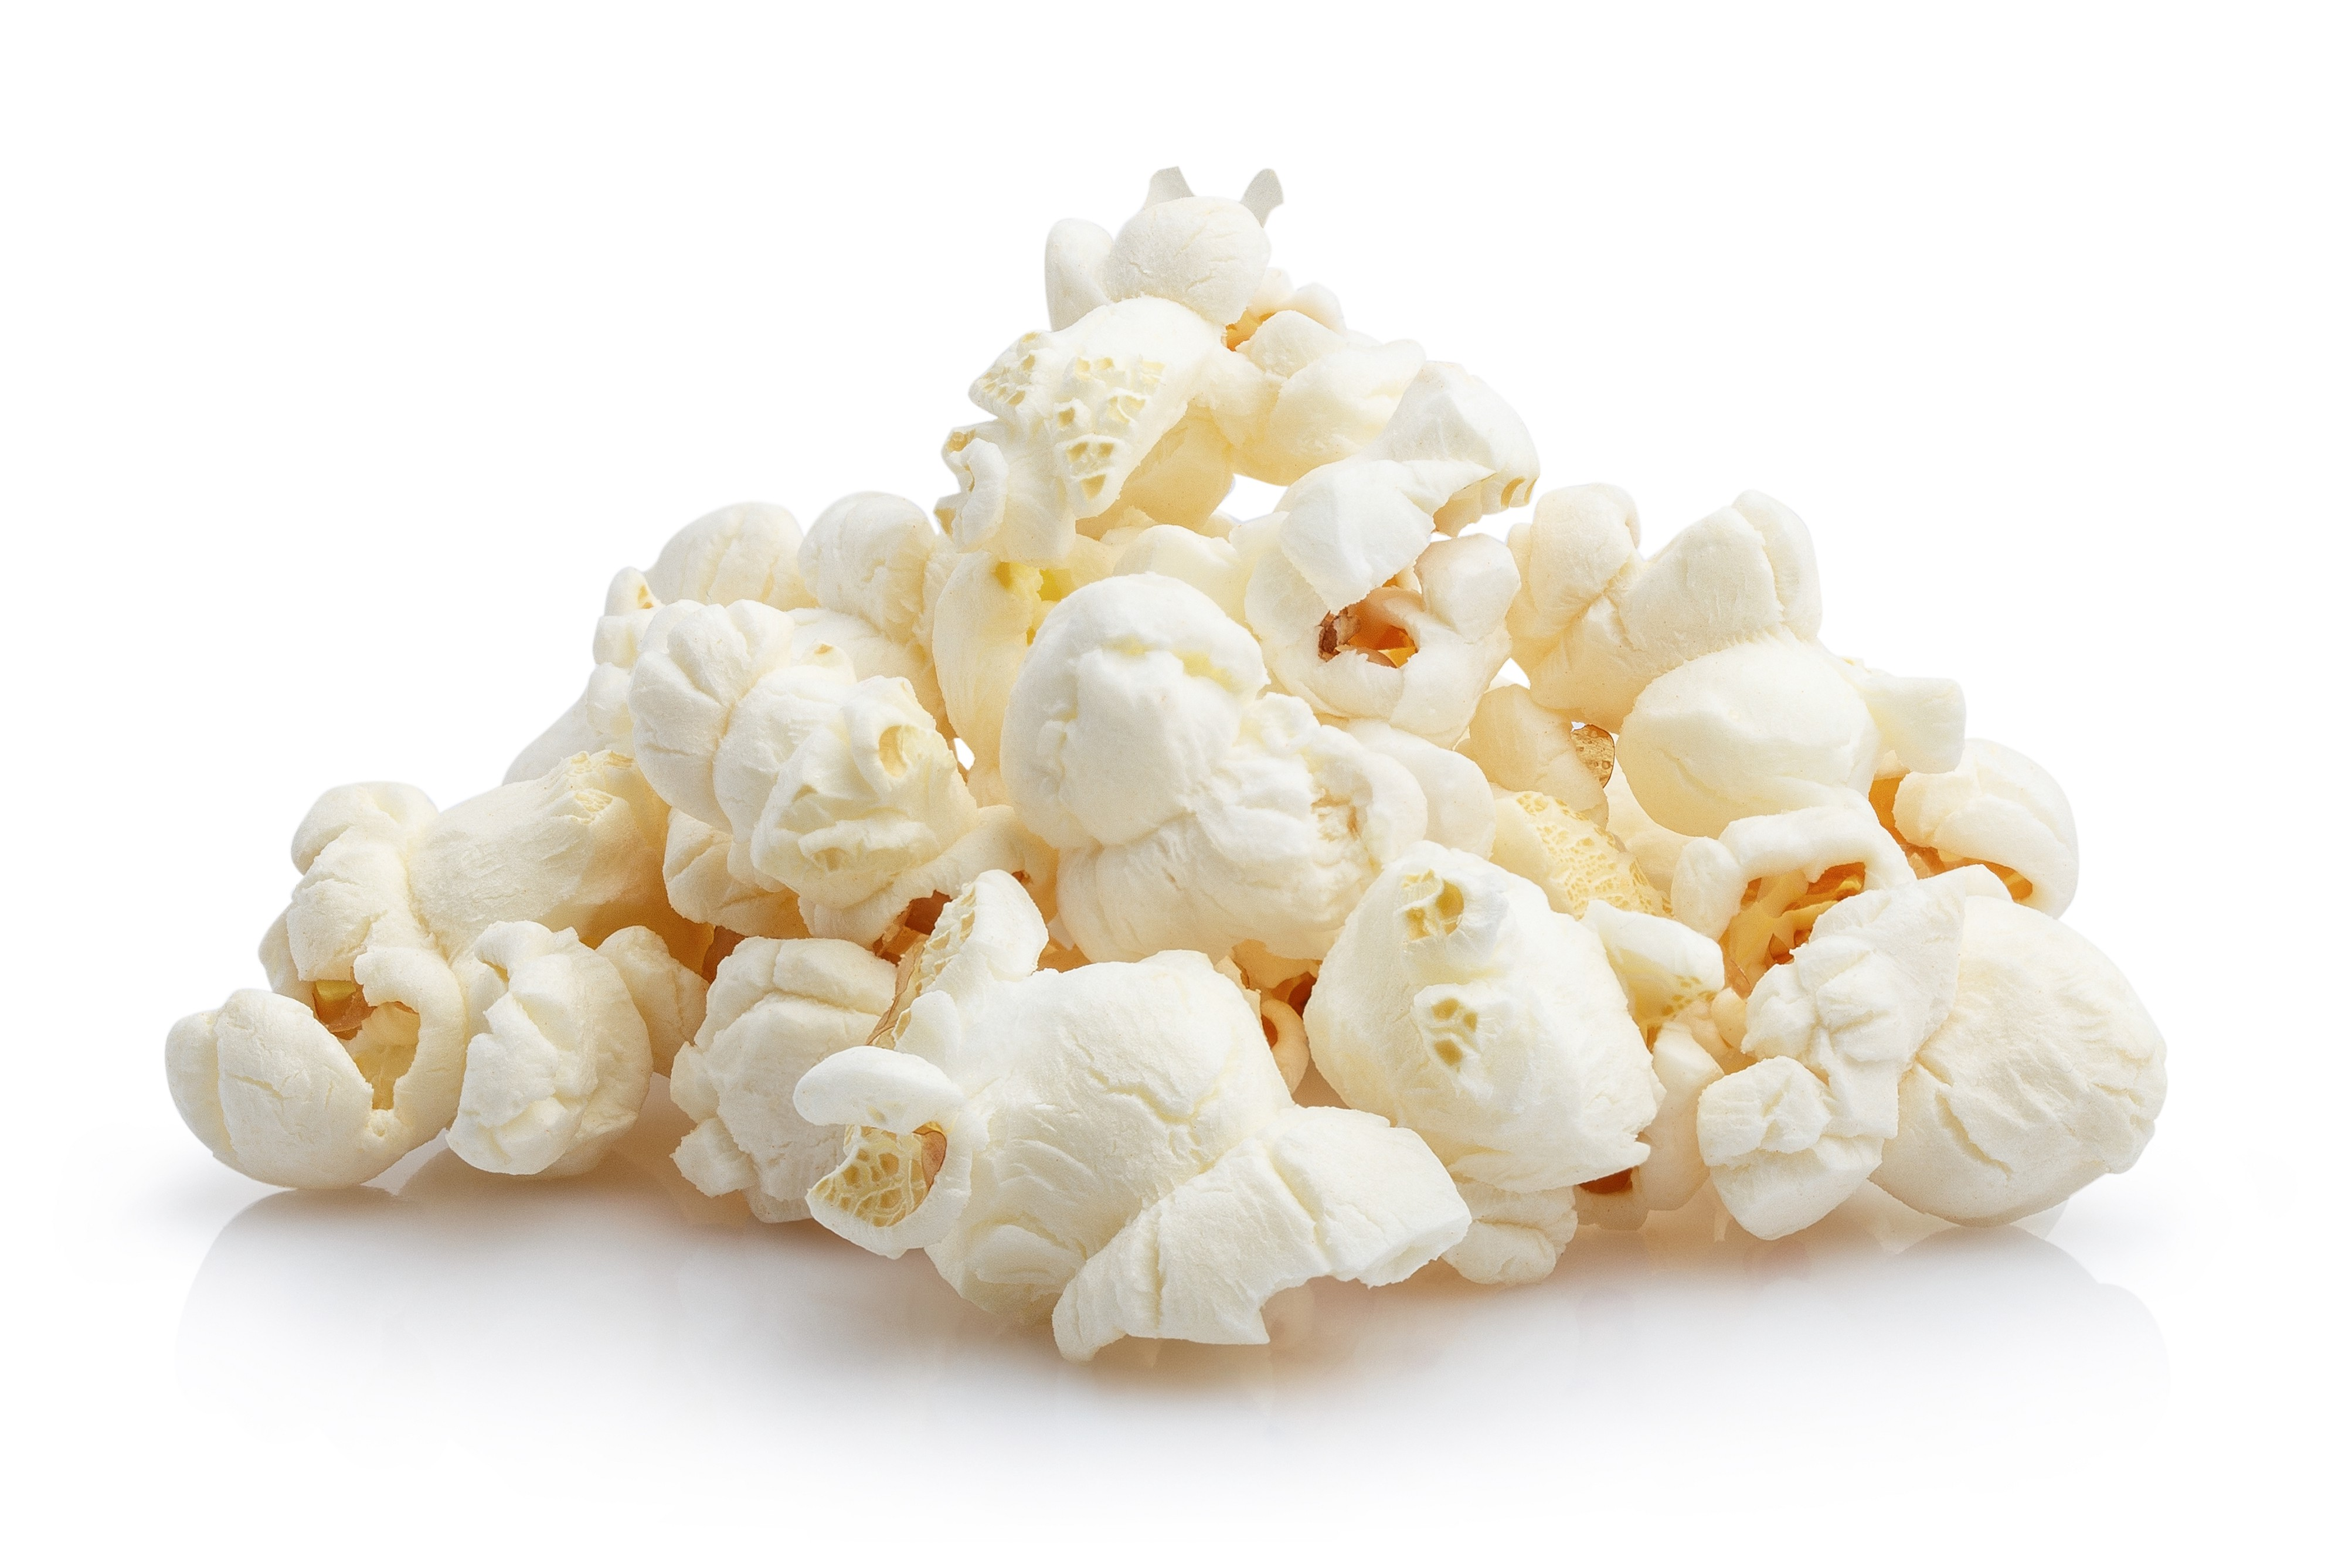 Healthy foods can be yummy  too - for instance air-popped pop corn is low calories